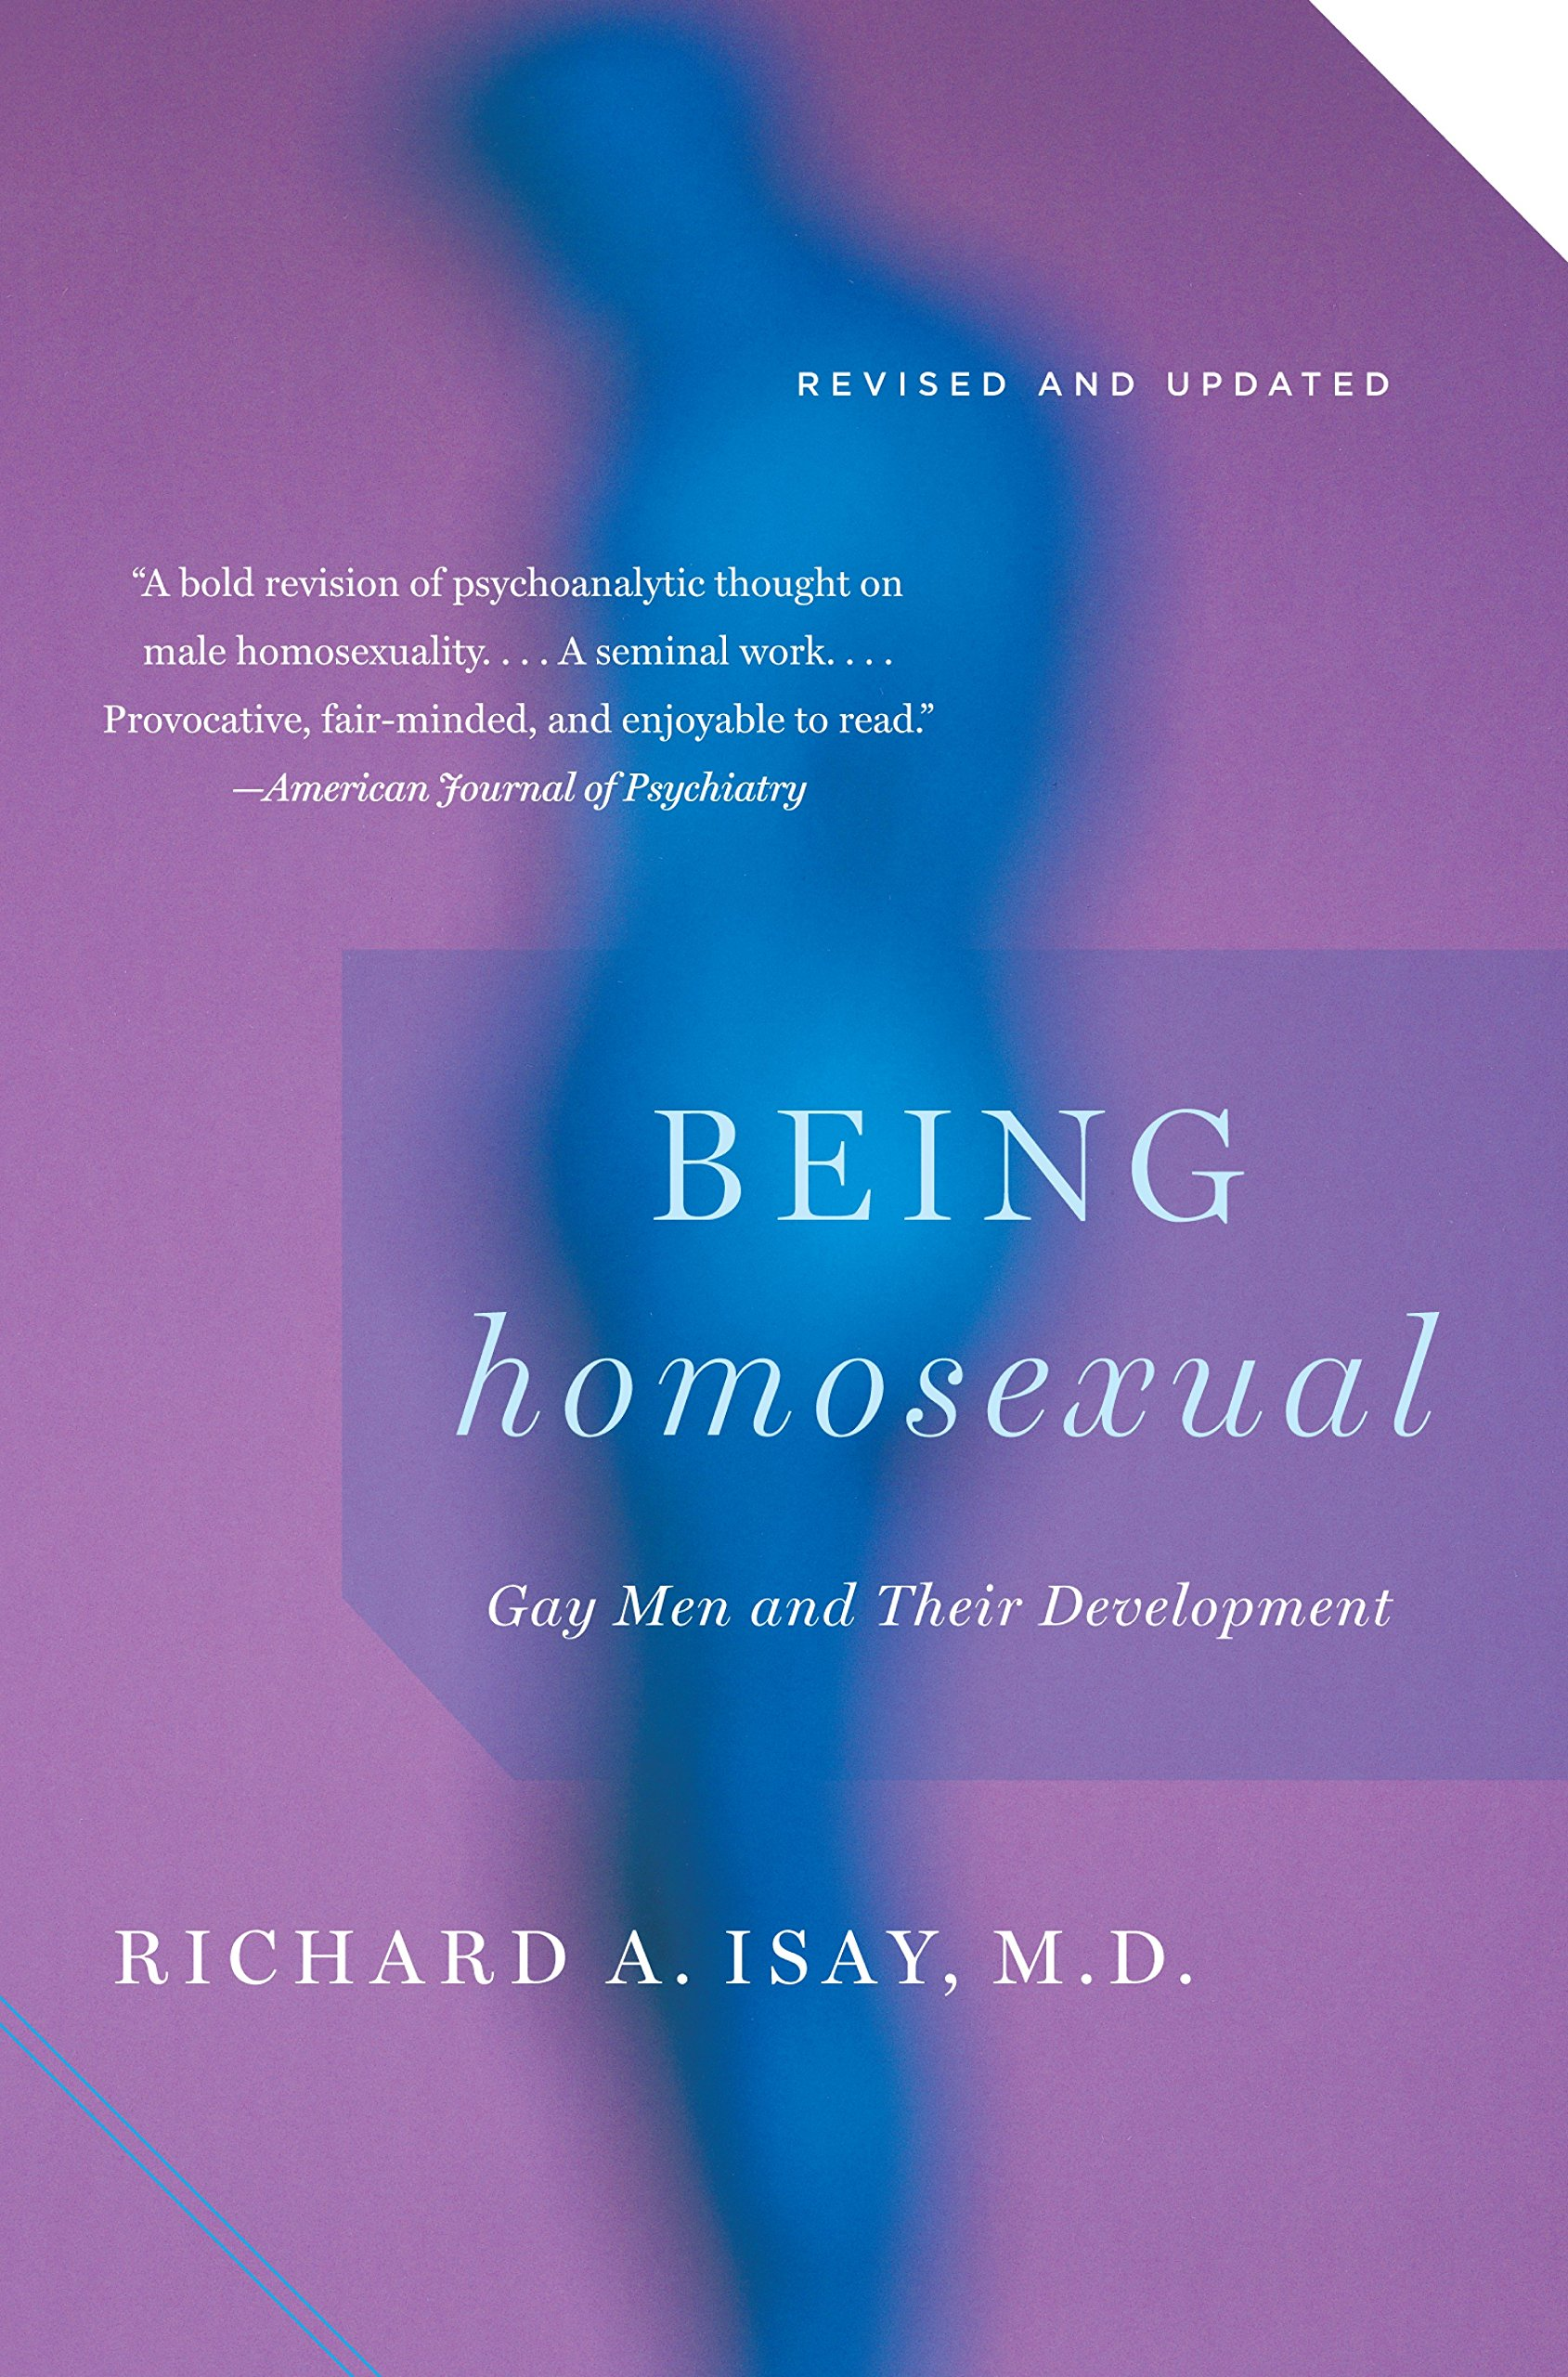 Boyhood effeminacy and later homosexuality statistics